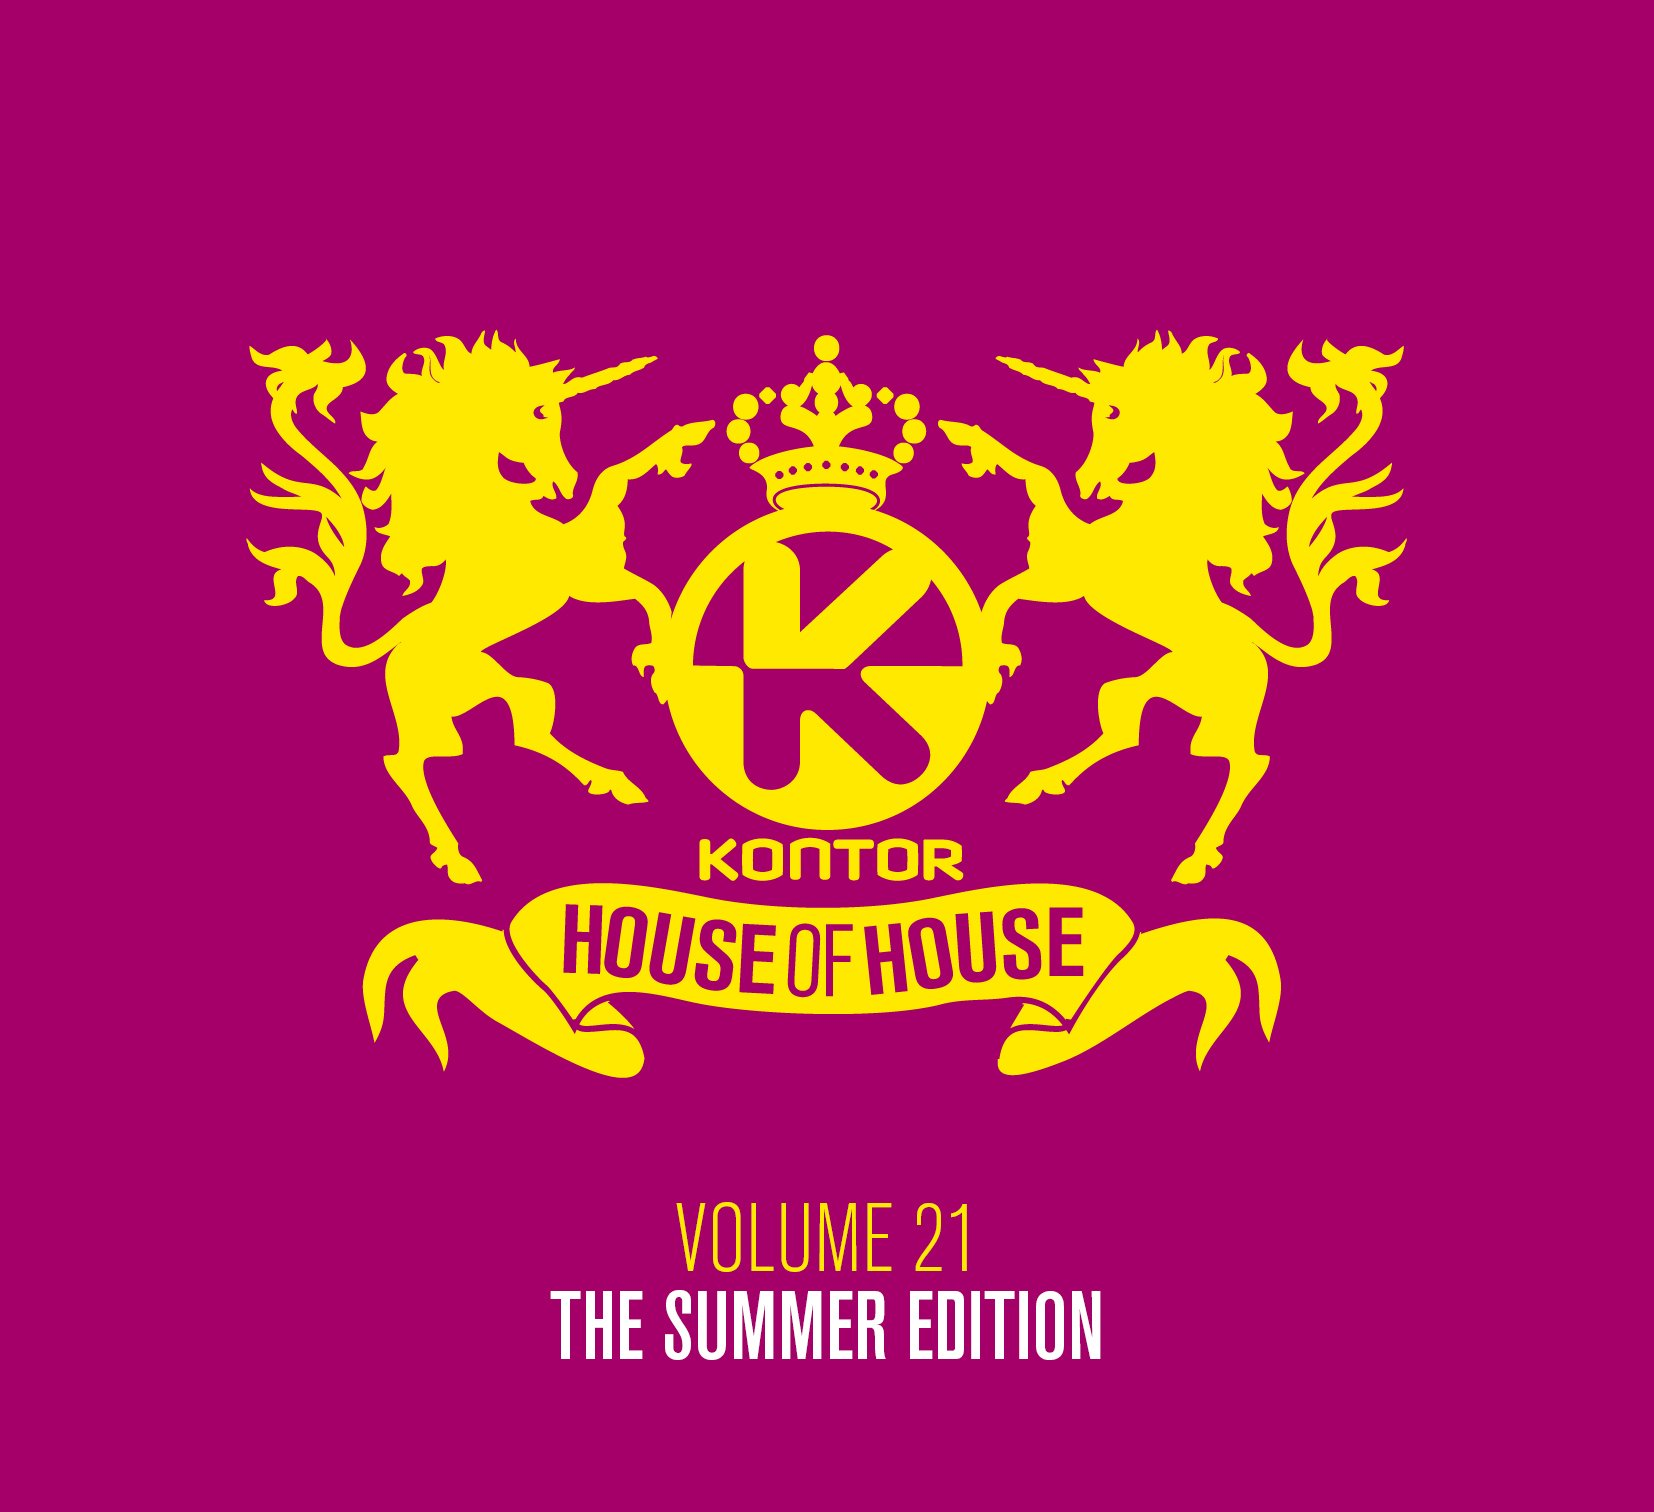 VA-Kontor House Of House Vol. 21 The Summer Edition-3CD-FLAC-2015-VOLDiES Download